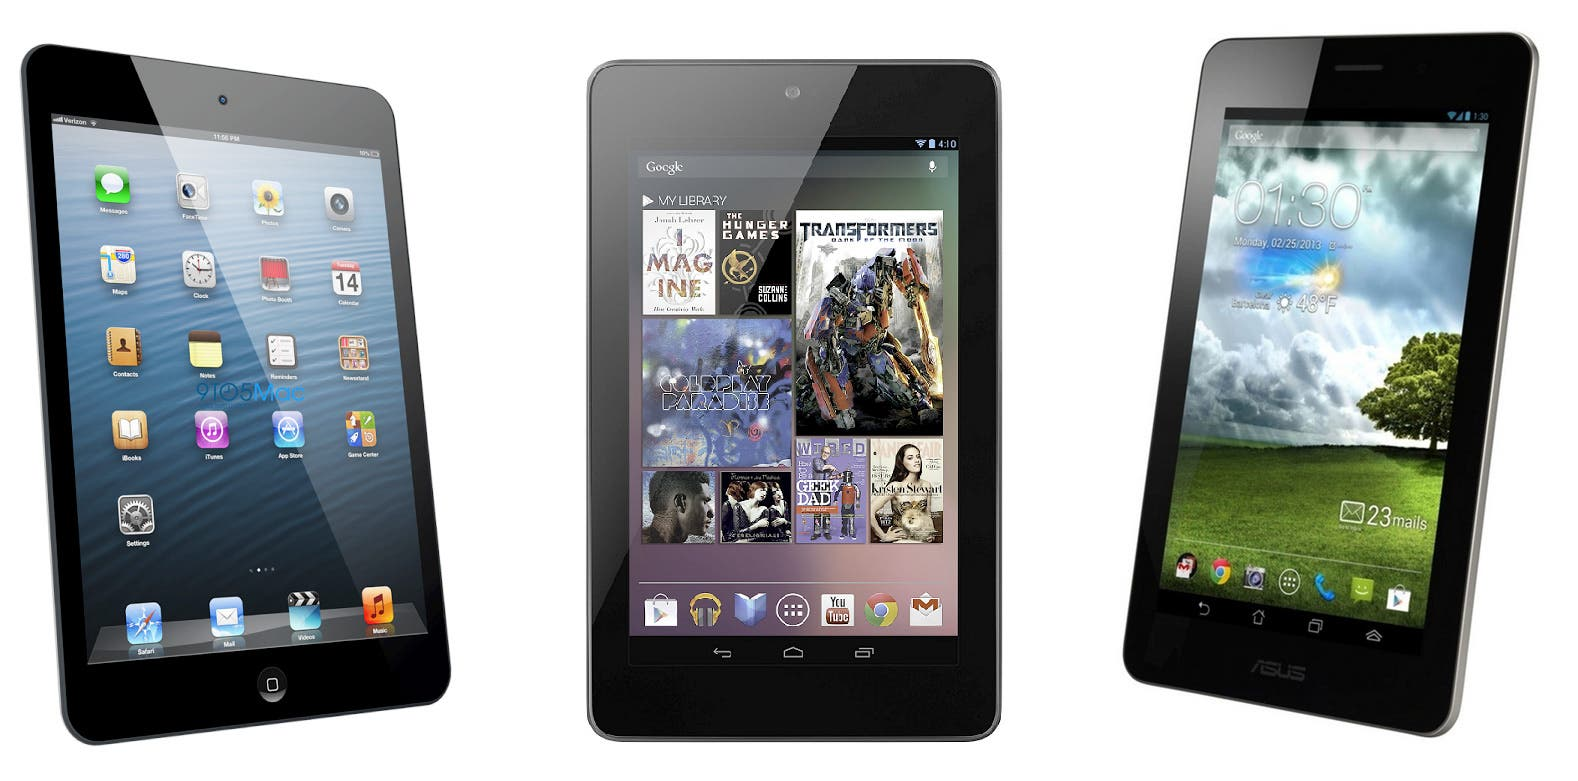 ipad-mini-vs-google-nexus-7-vs-asus-fonepad